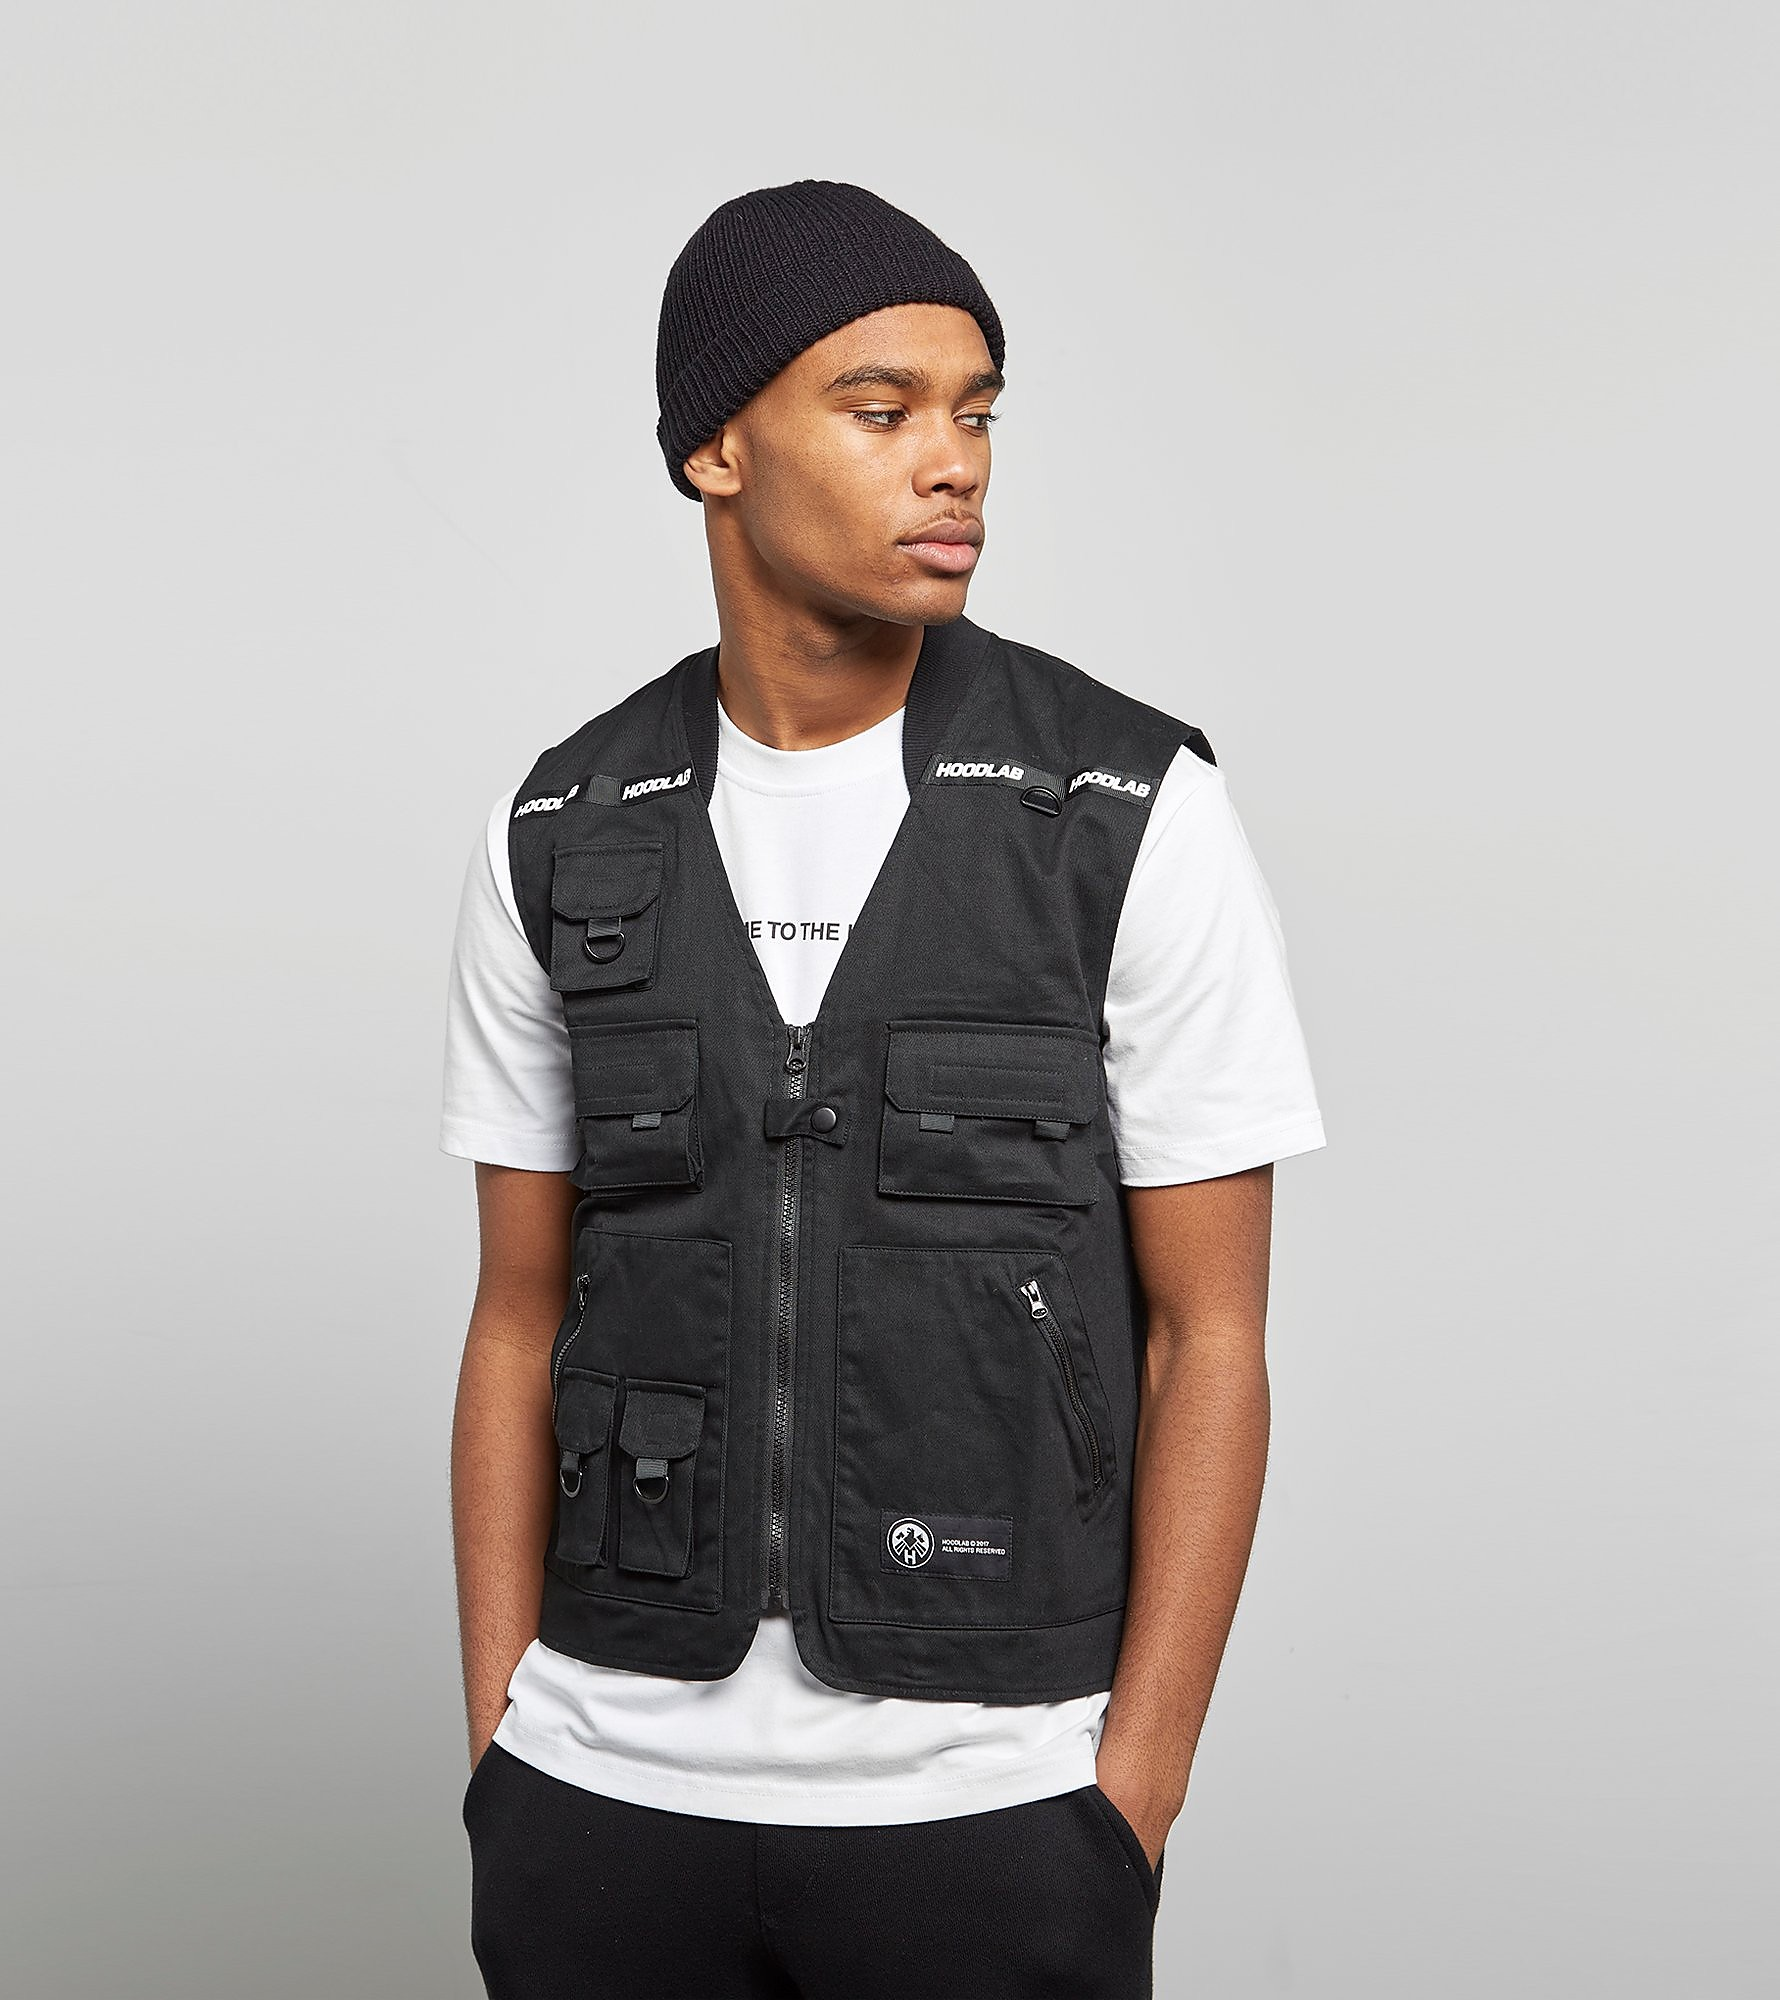 Hoodlab Veste sans Manches Tactical - exclusivité size?